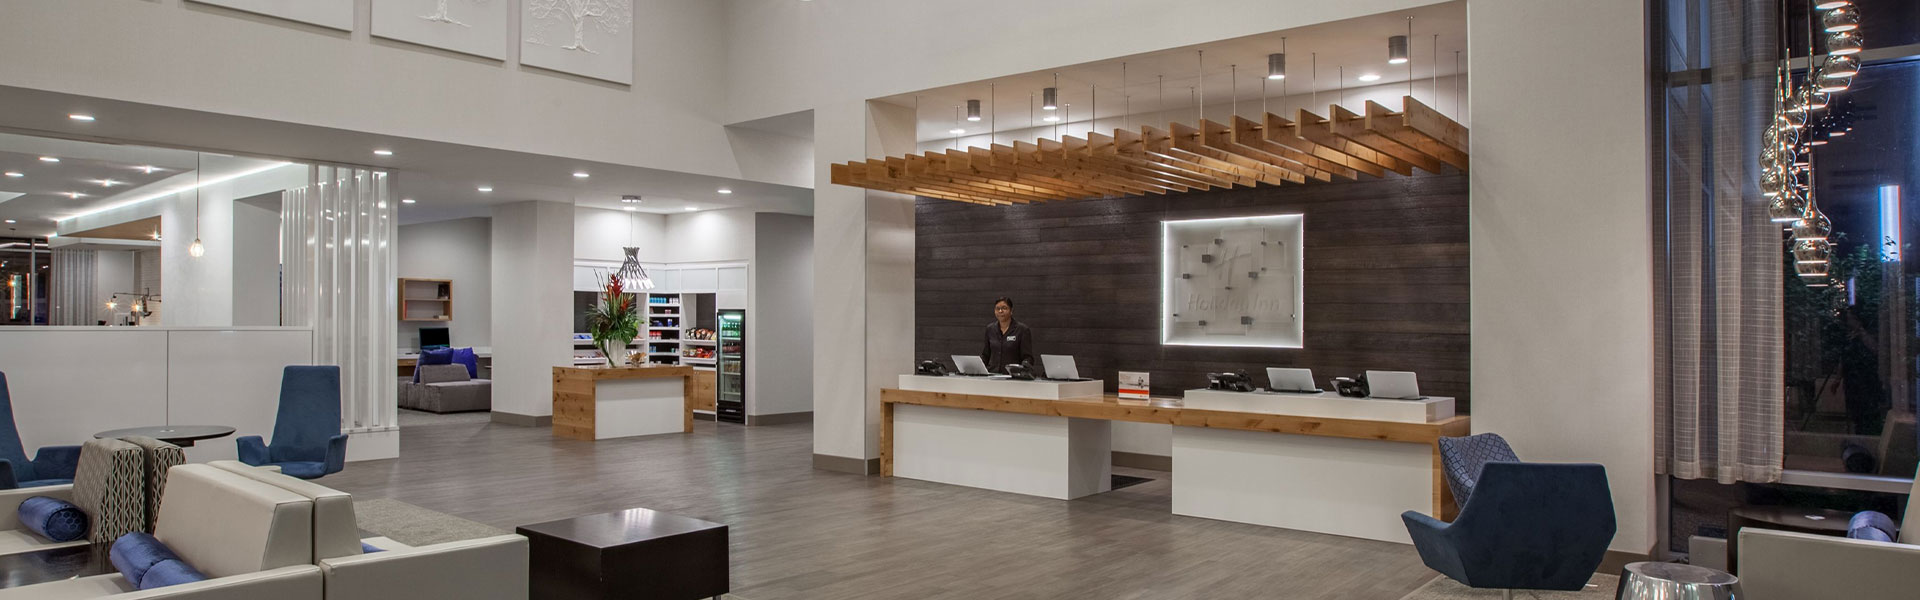 Holiday Inn Cleveland Clinic Ohio - Location & Contact